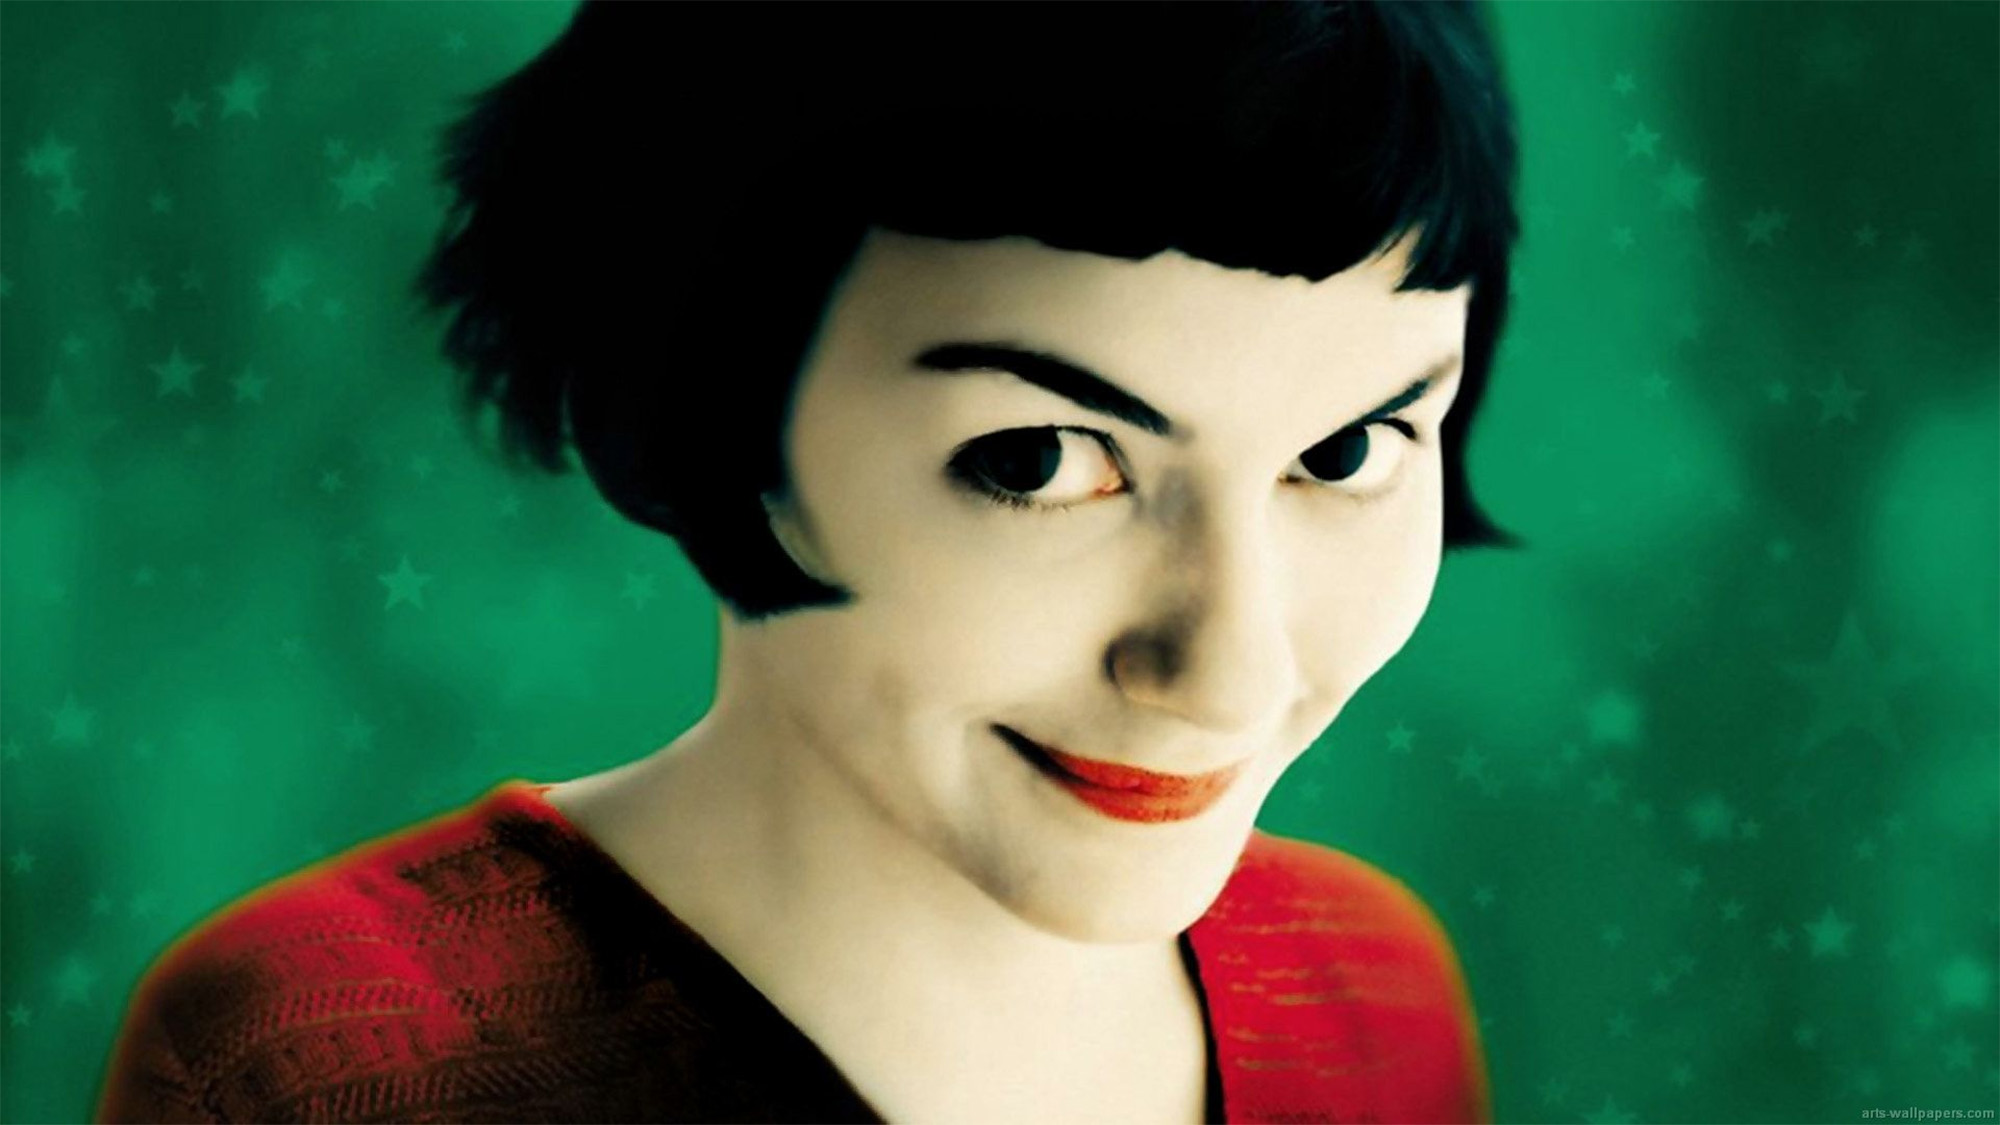 Ten moments that made us fall in love with 'Amélie'